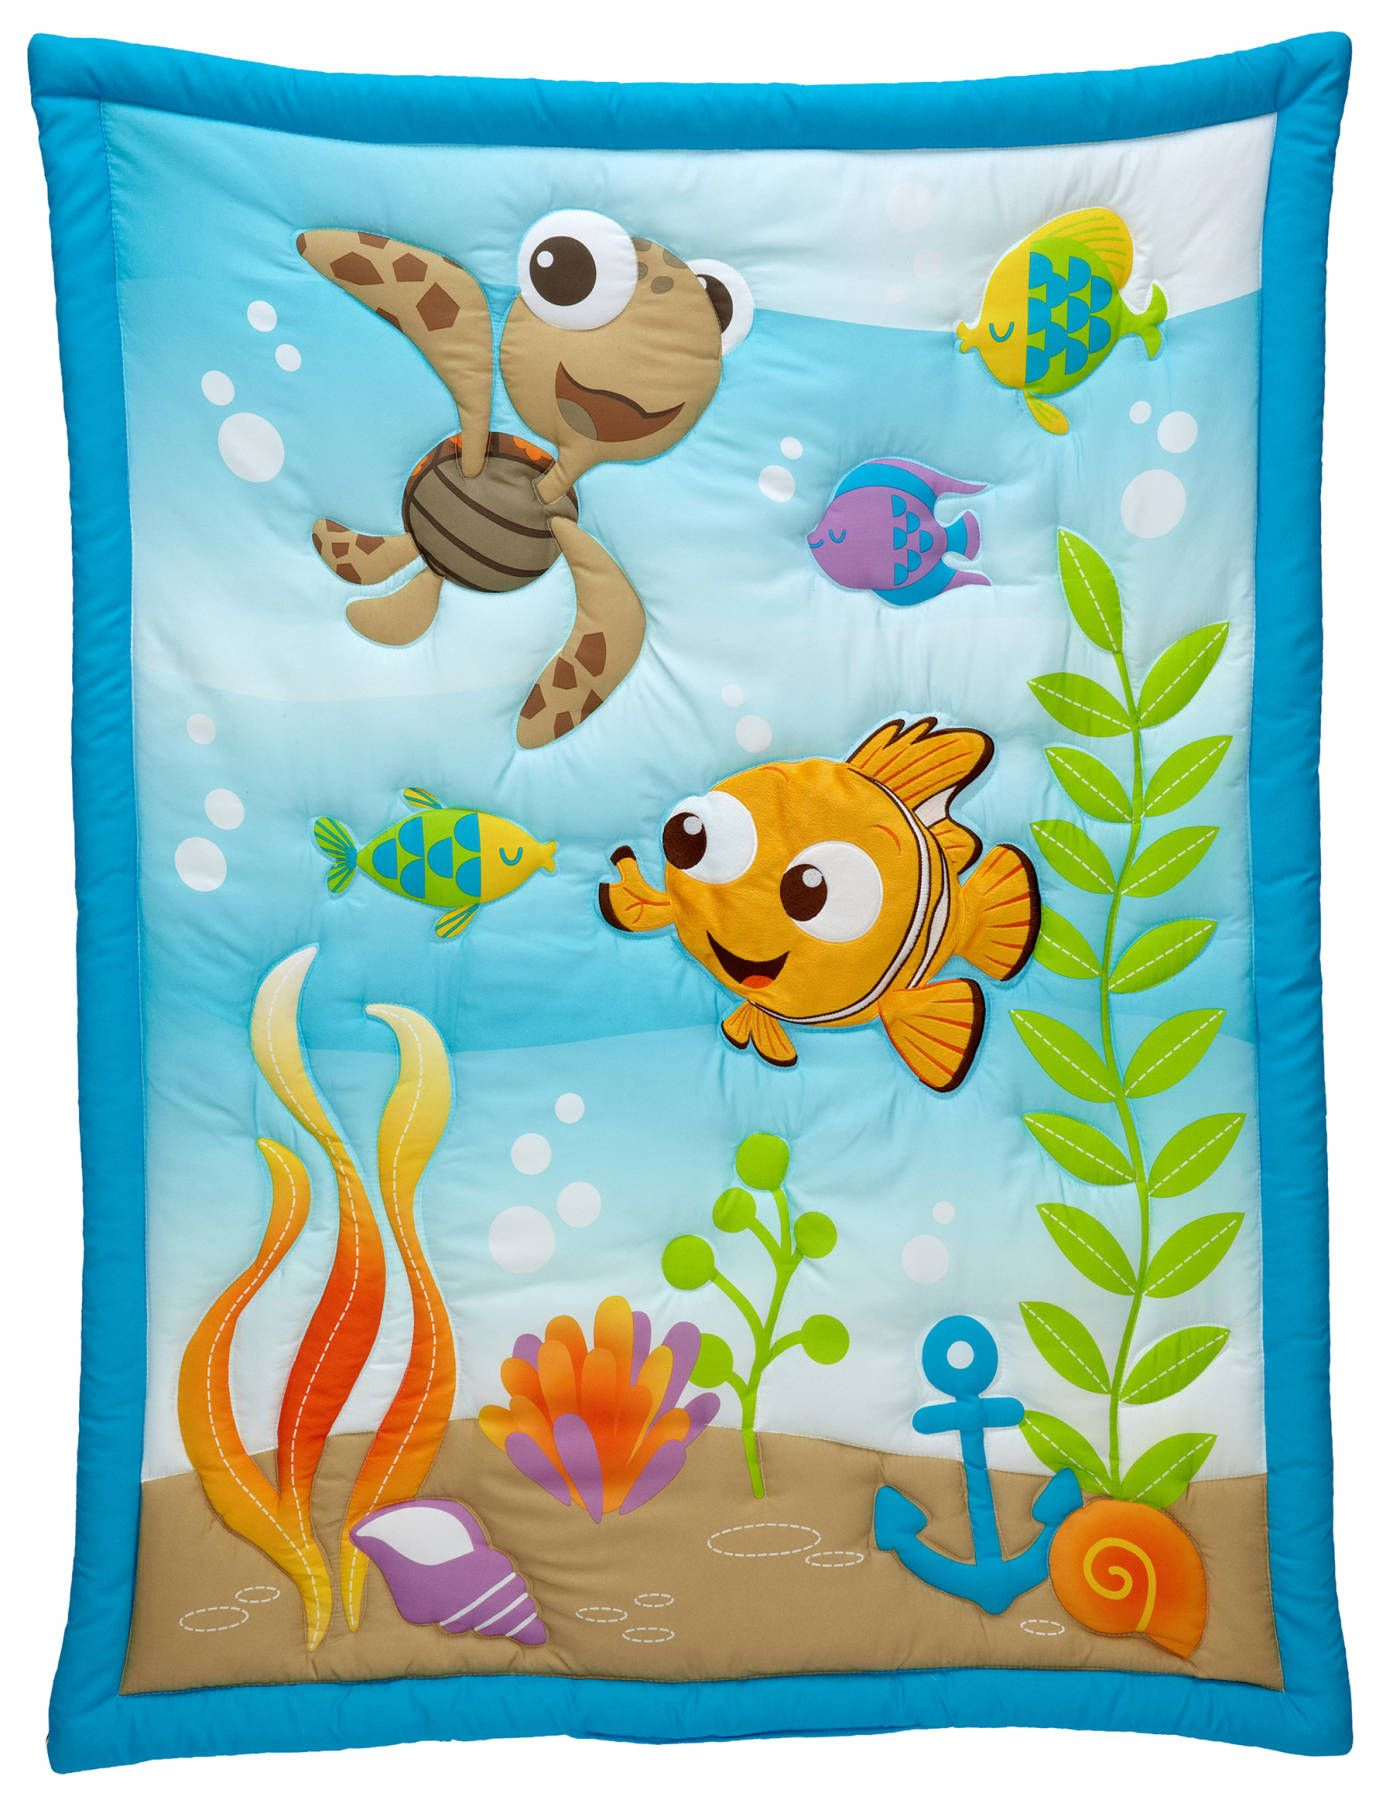 finding nemo a day at the sea 3-piece crib bedding set | baby